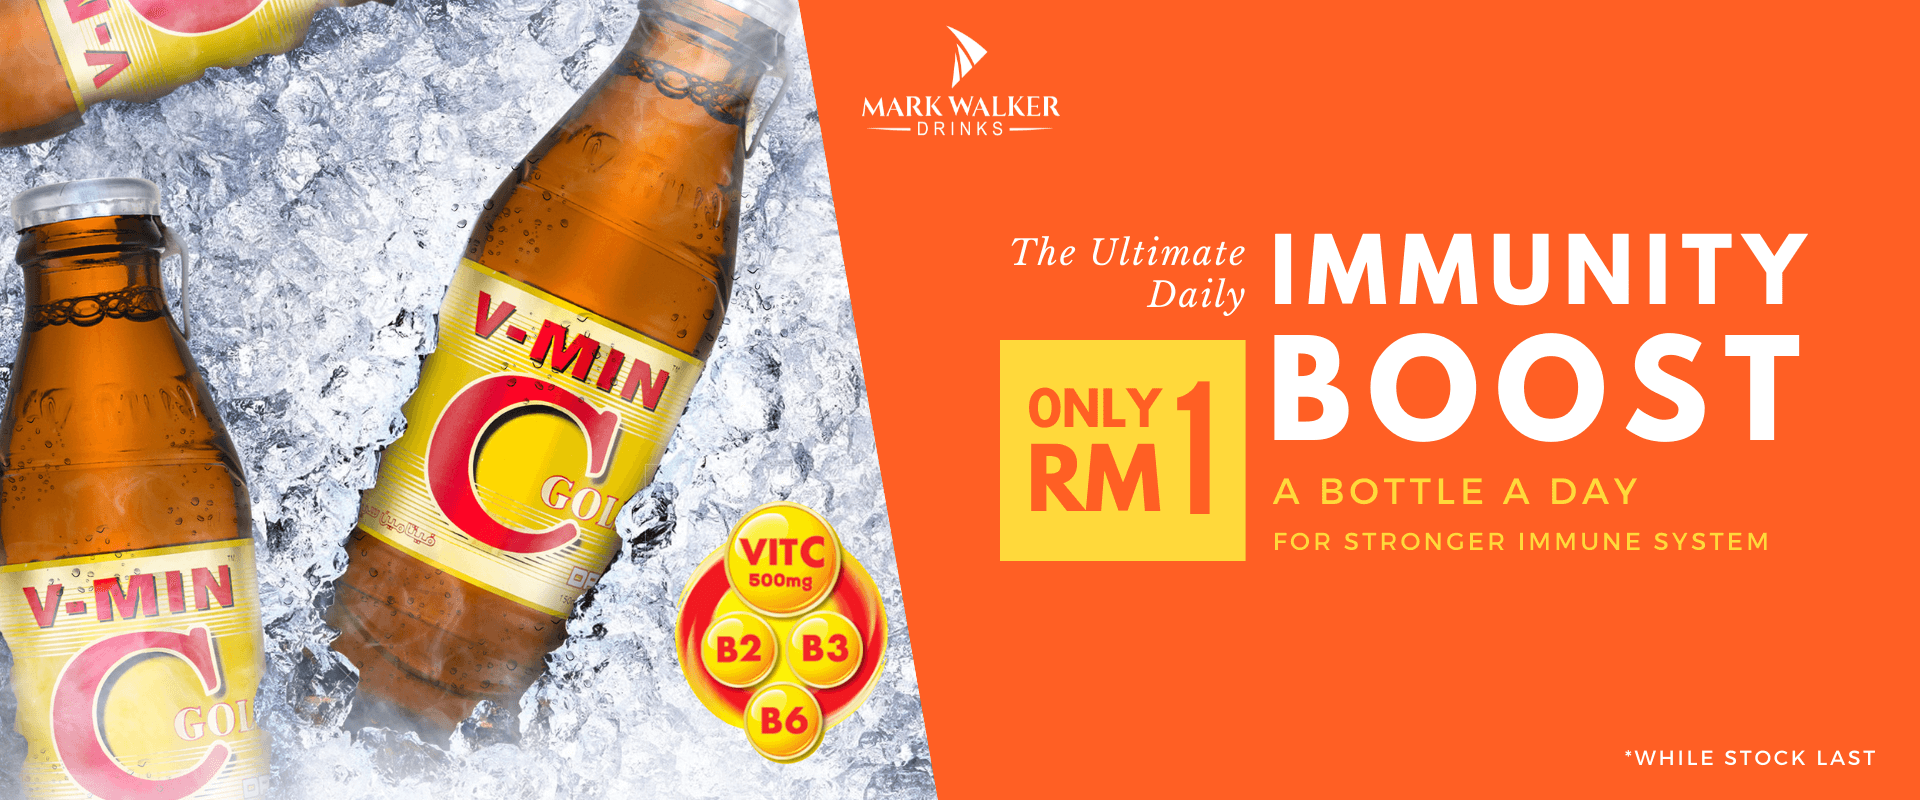 Mark Walker Drink riches with Vitamin C and B. Only RM1, get your immunity booster today